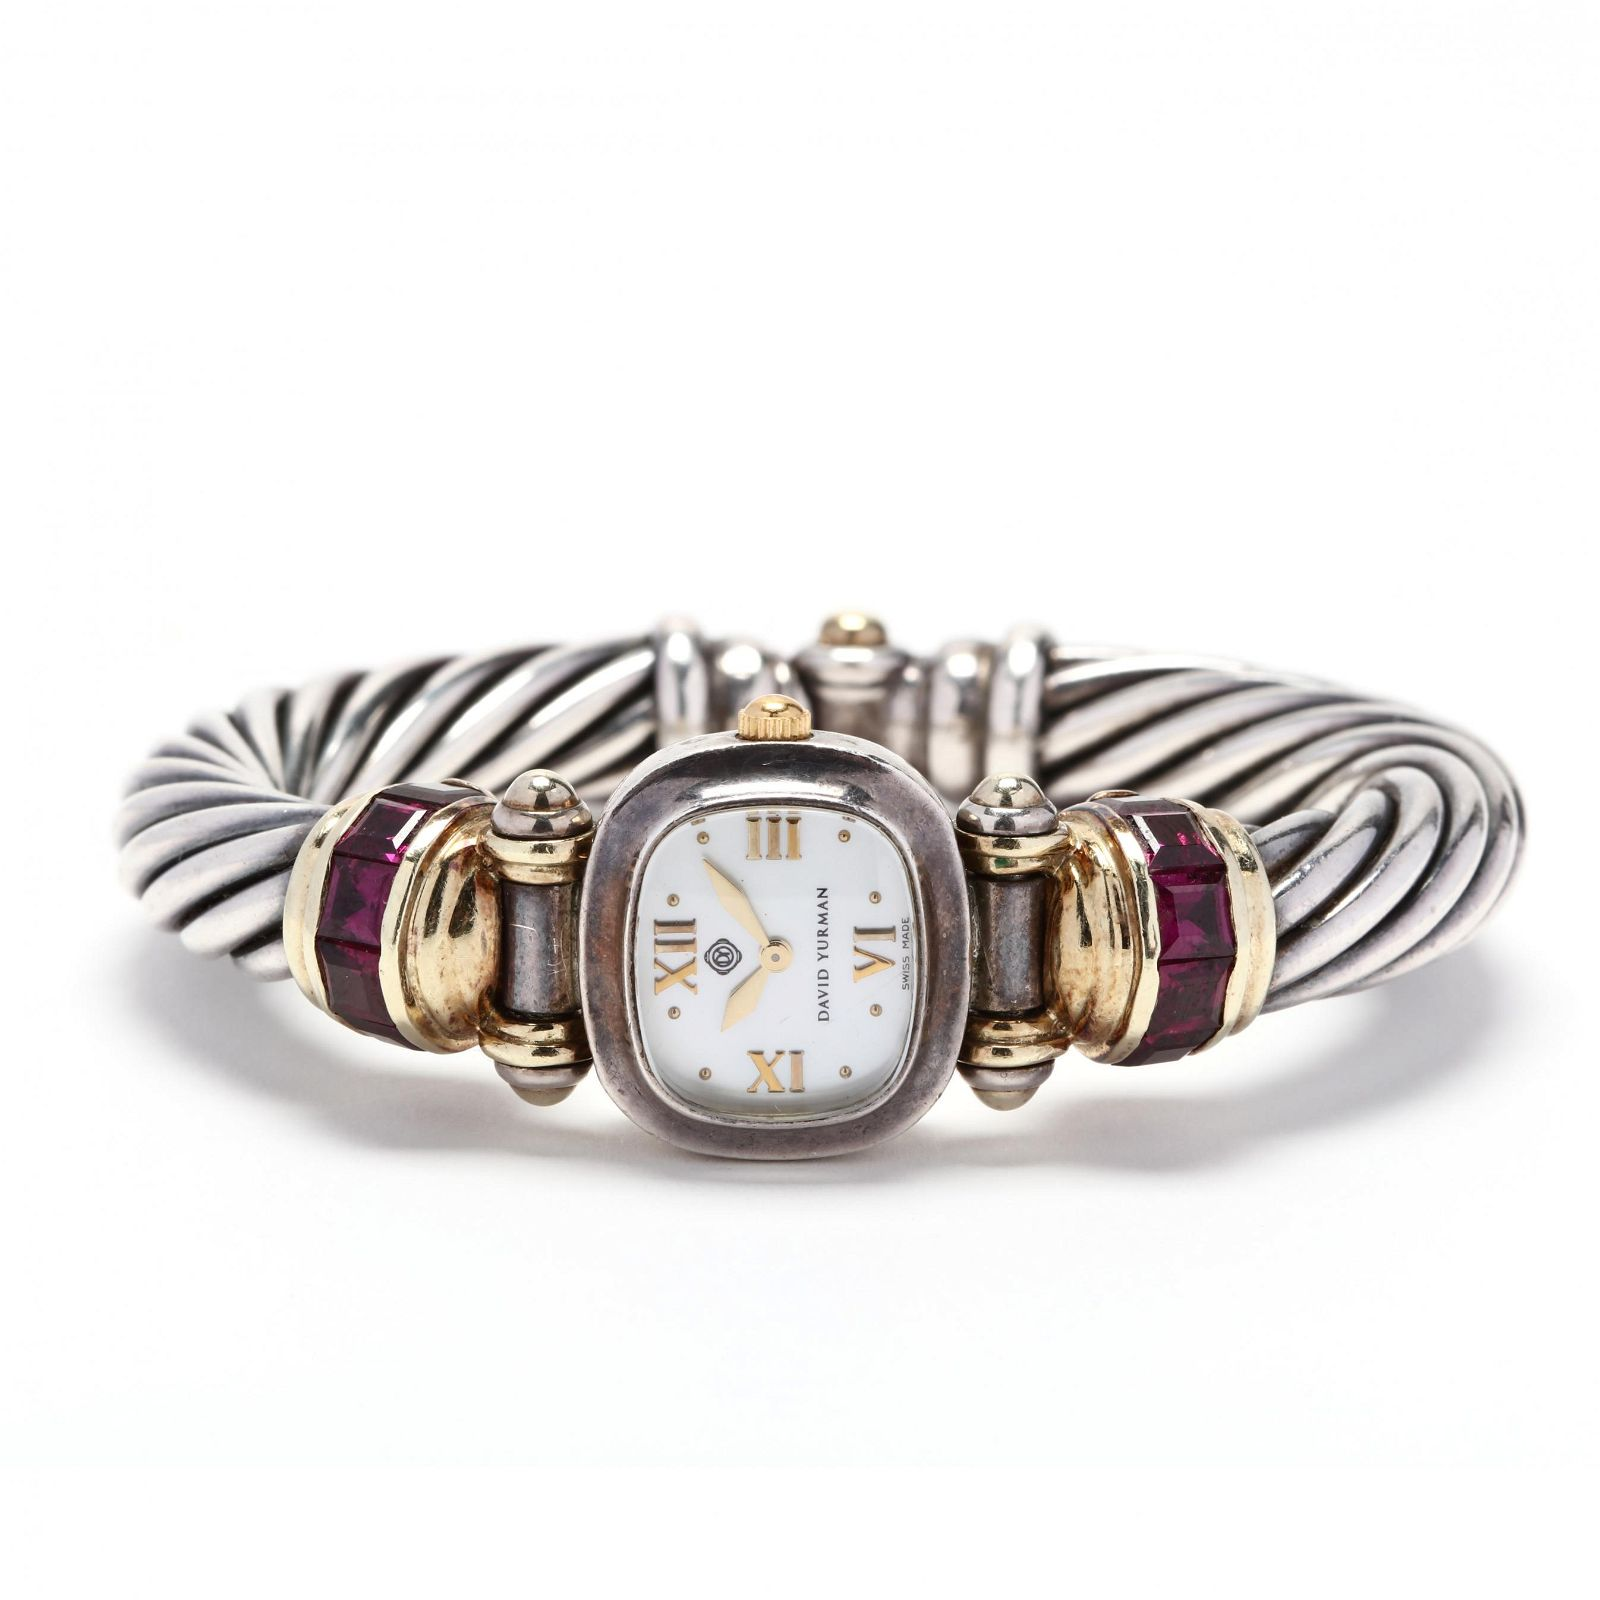 Sterling Silver, 14KT Gold, and Tourmaline Watch, David